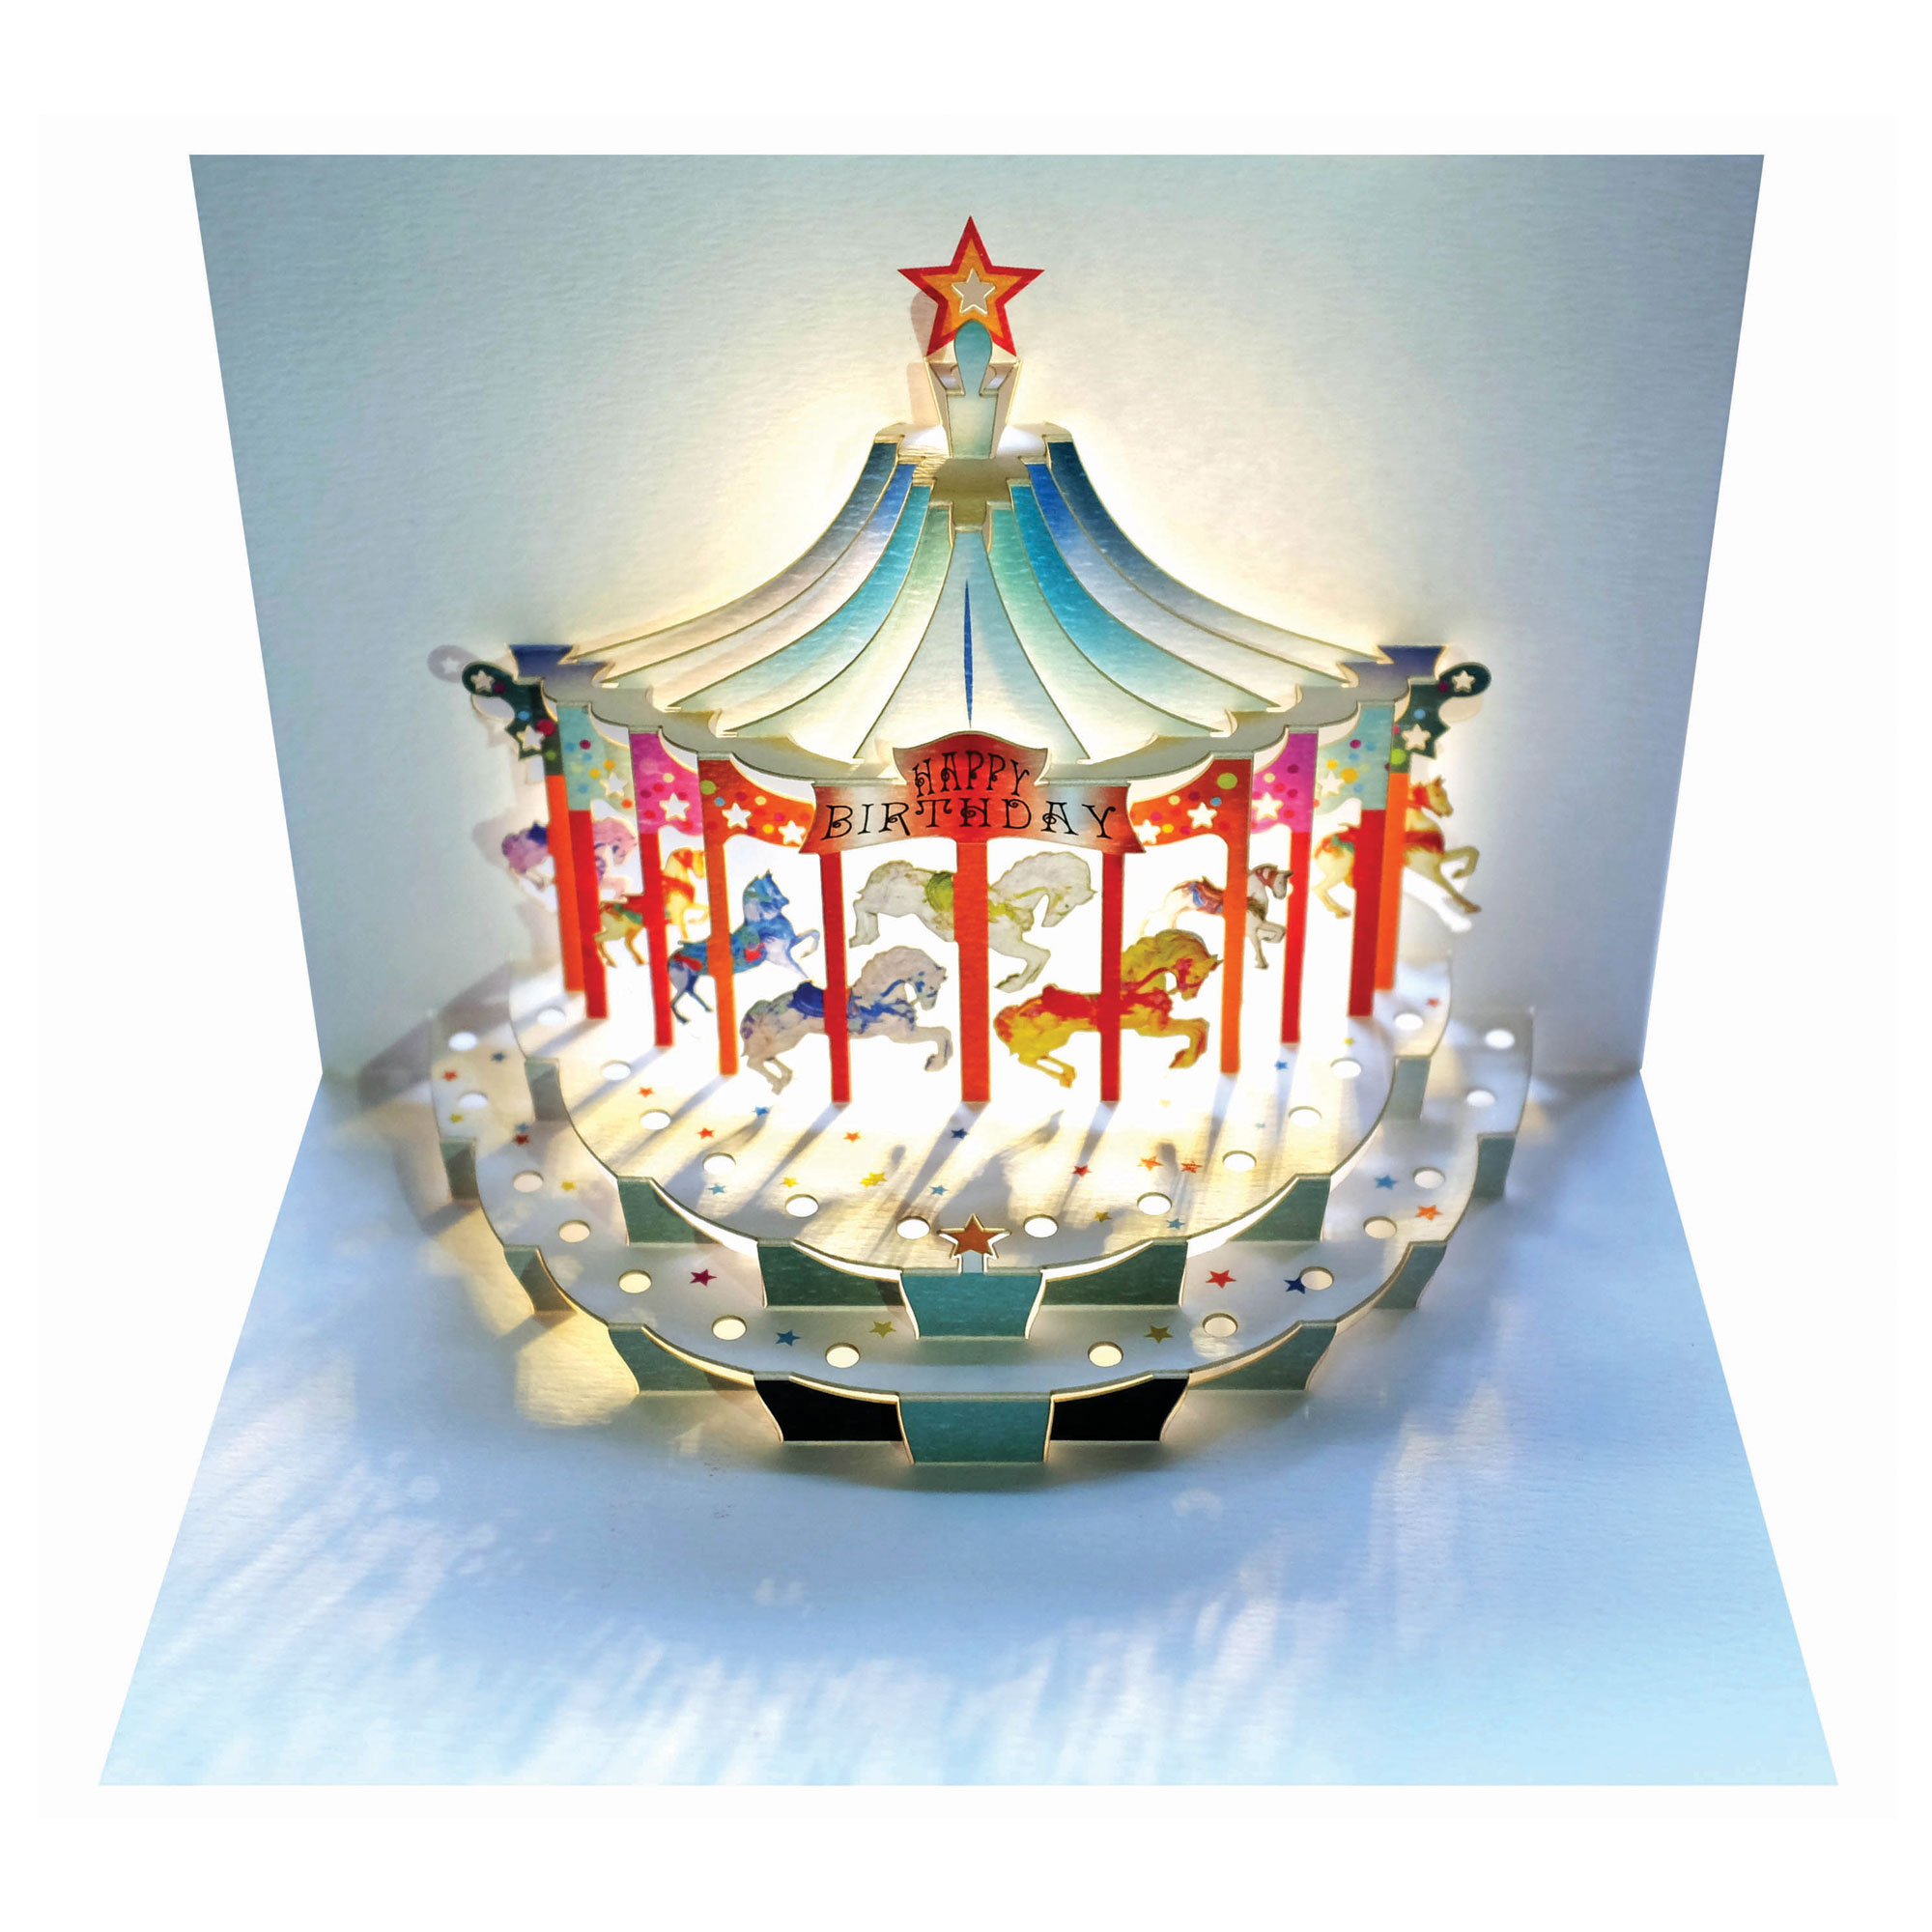 GE Feng Forever Happy Birthday Carousel Amazing Popup Greeting Card – Happy Birthday Pop Up Cards